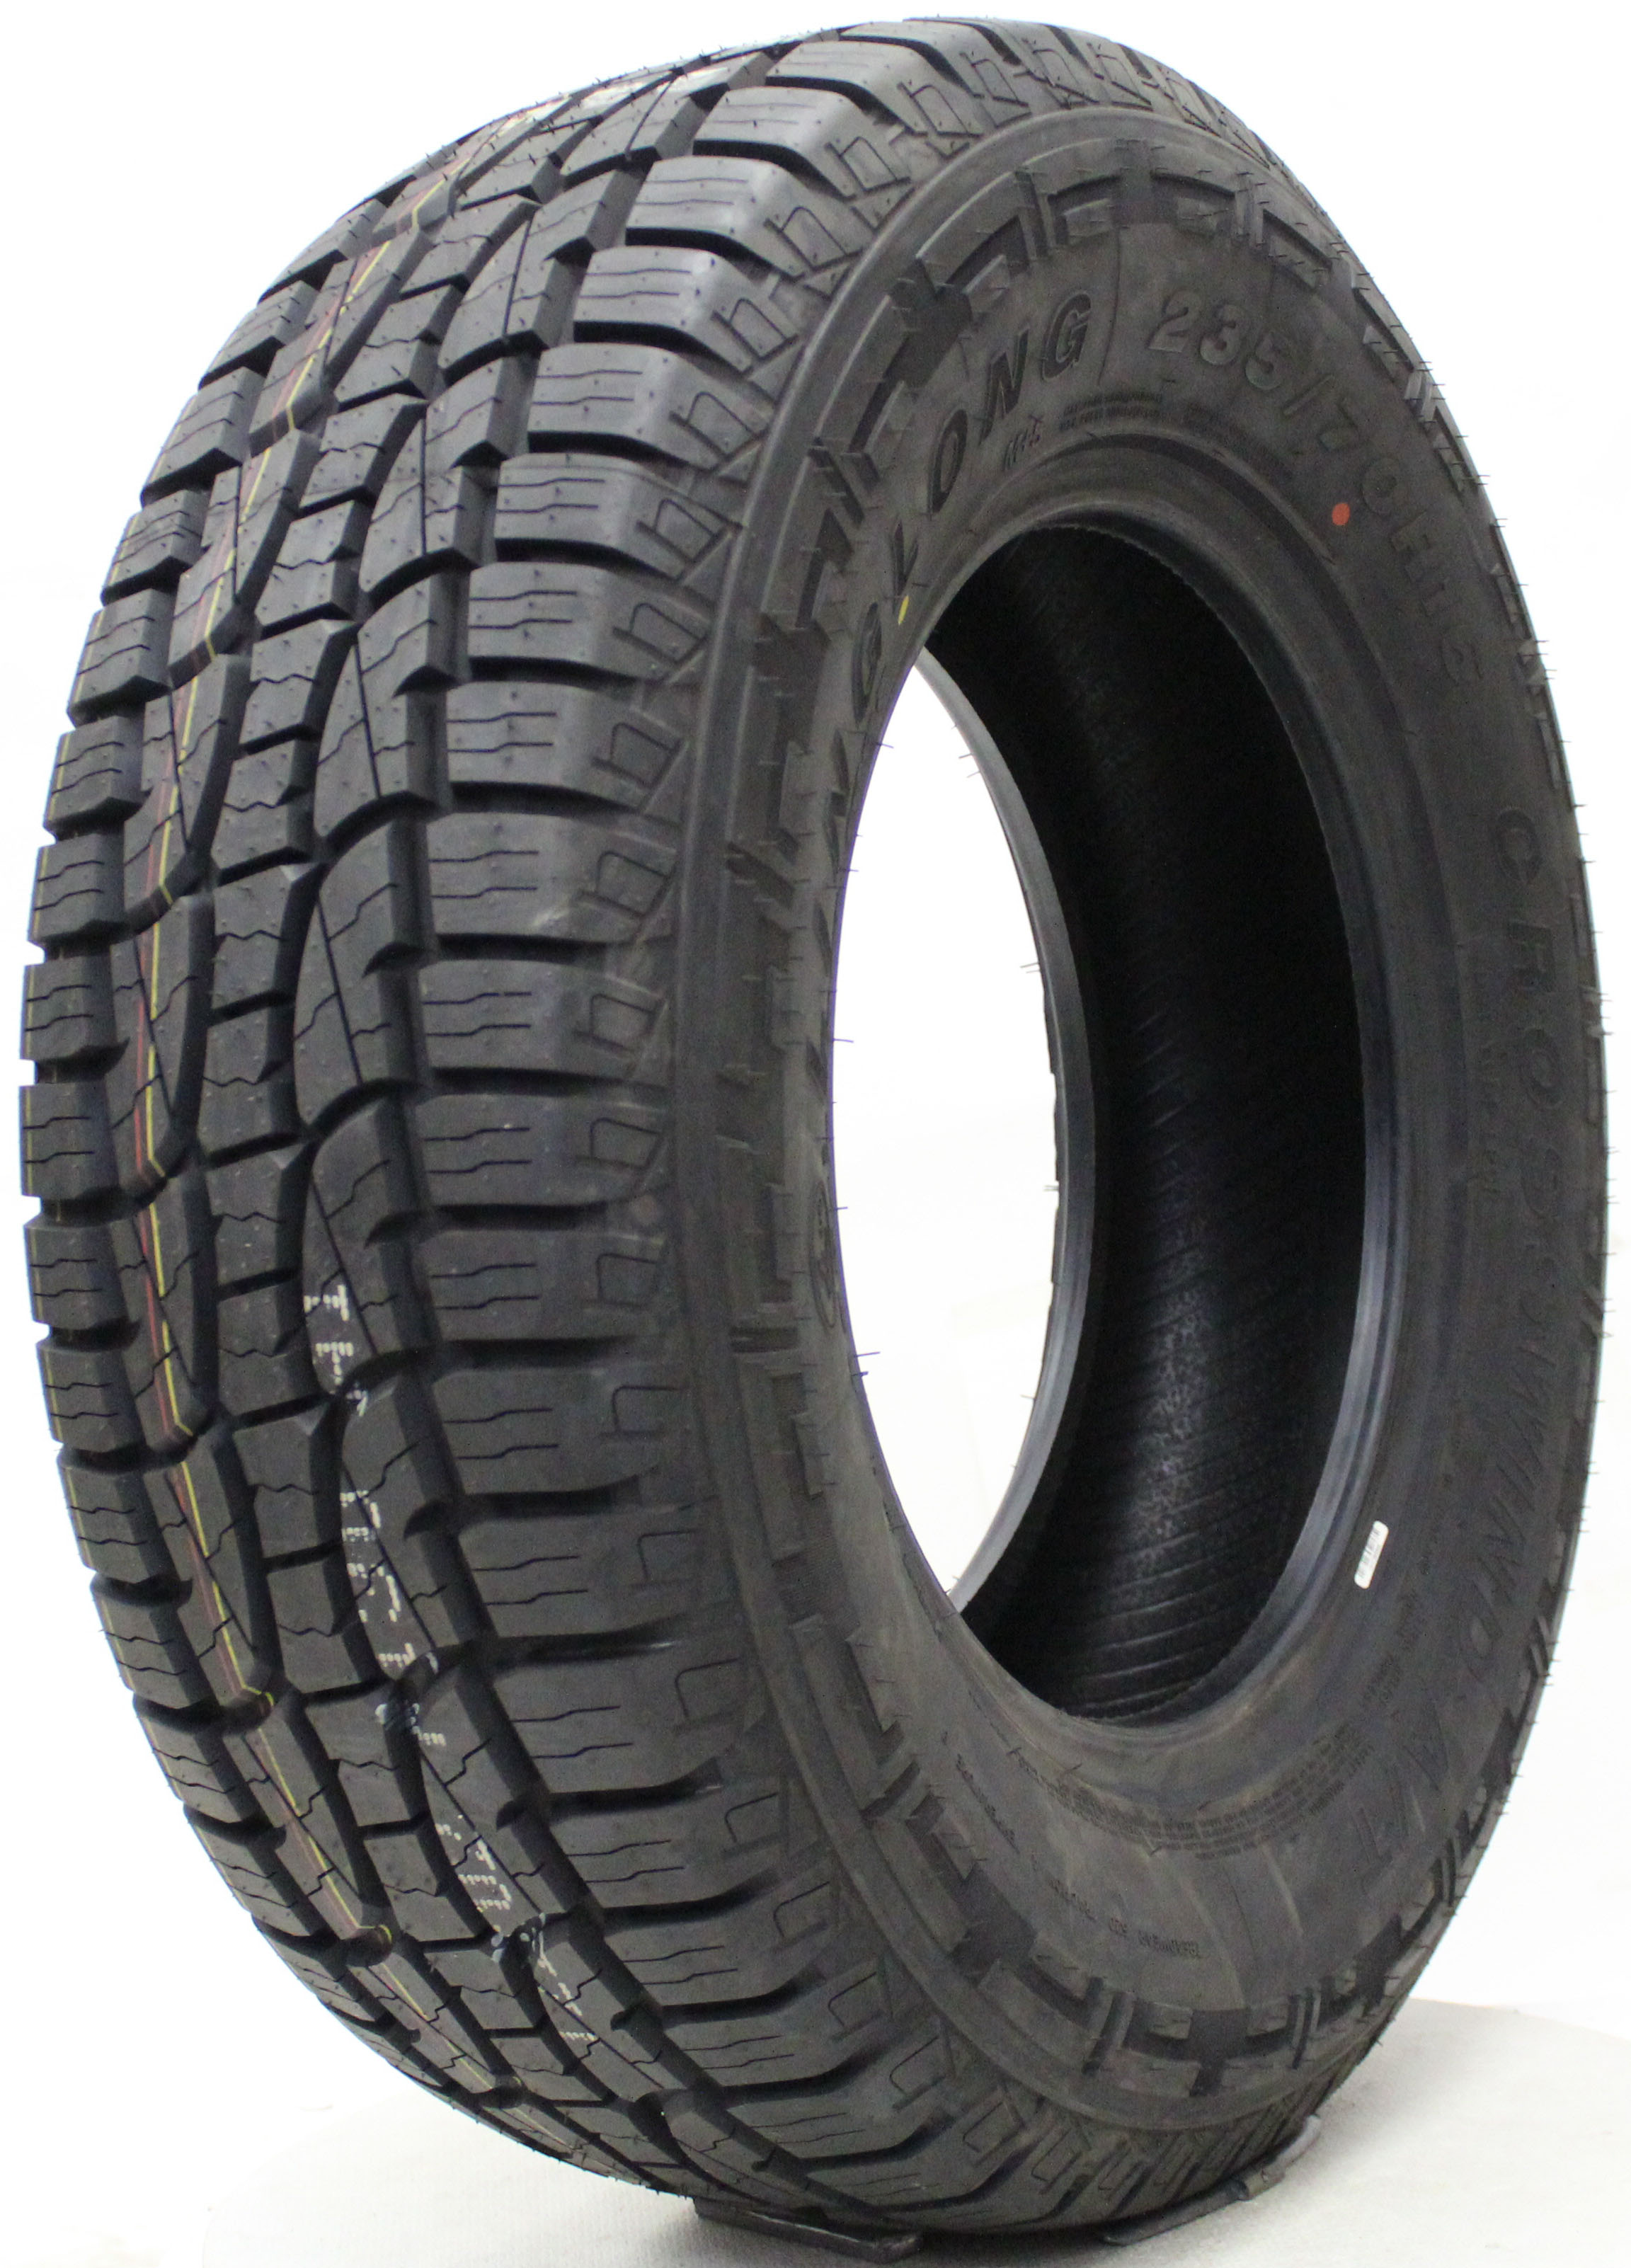 265 70r17 All Terrain Tires >> Crosswind A T 265 70r17 115t Bw Tire Walmart Com